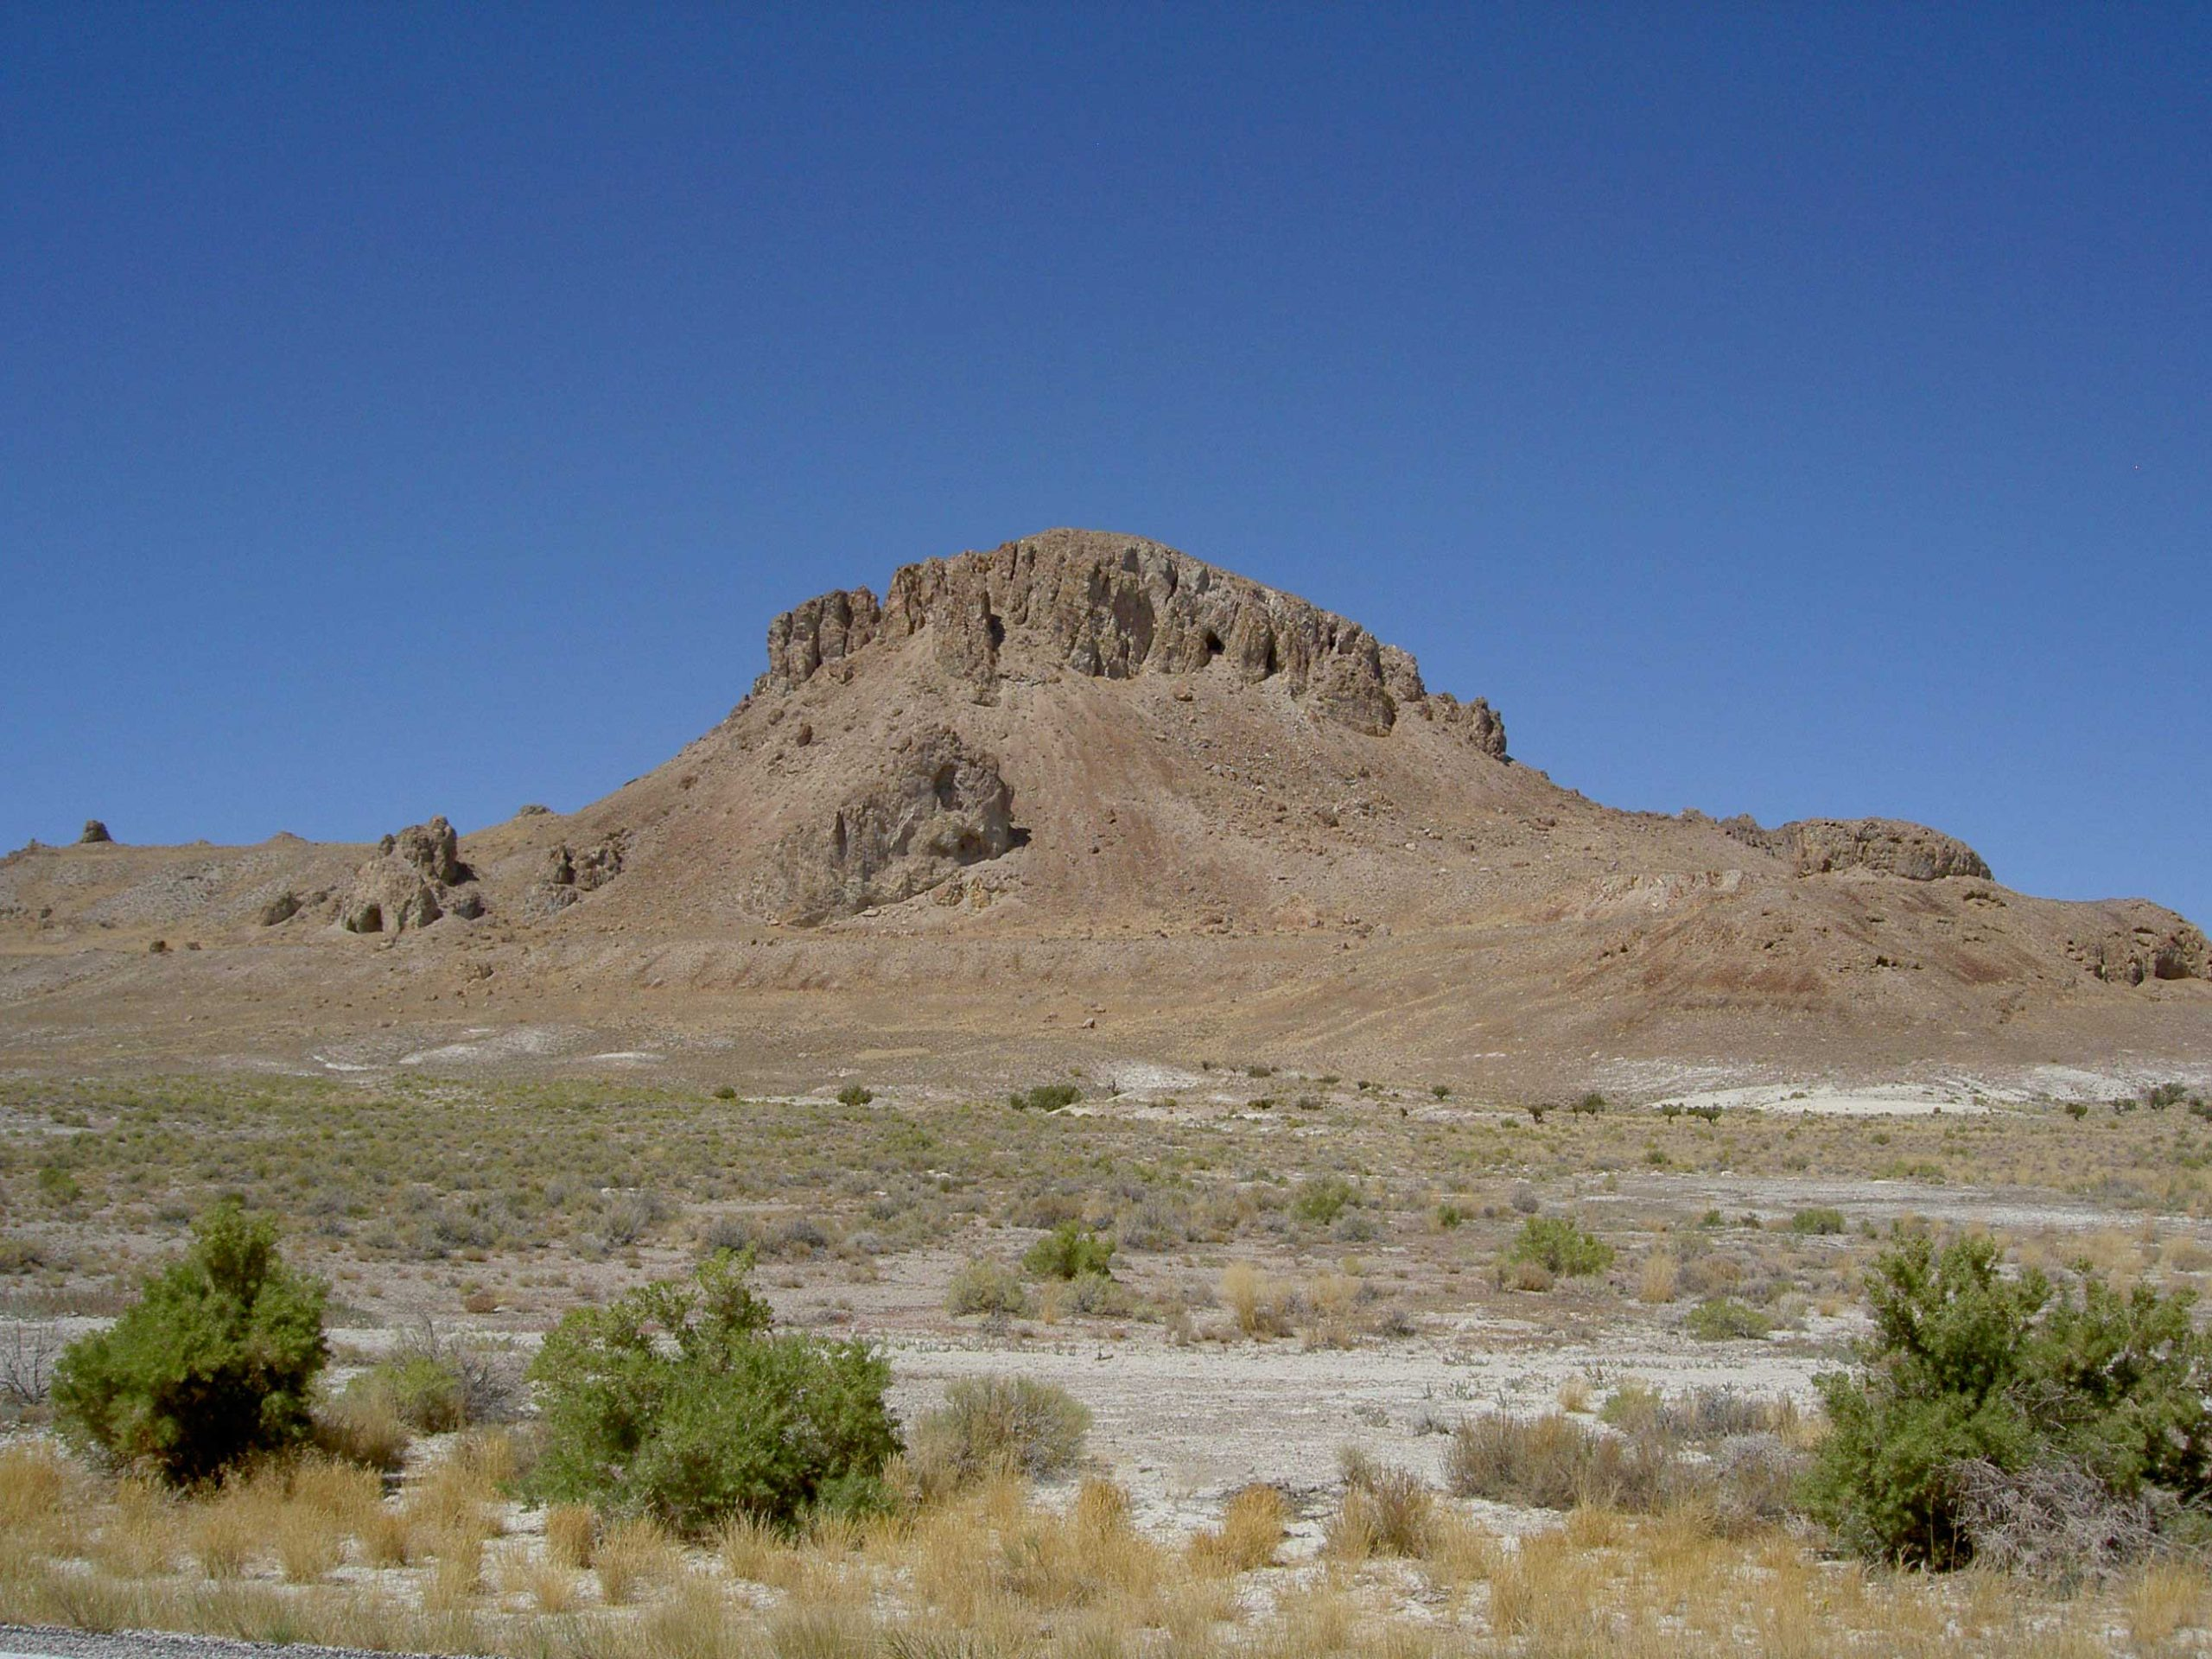 West of the Great Salt Lake near the Humboldt River